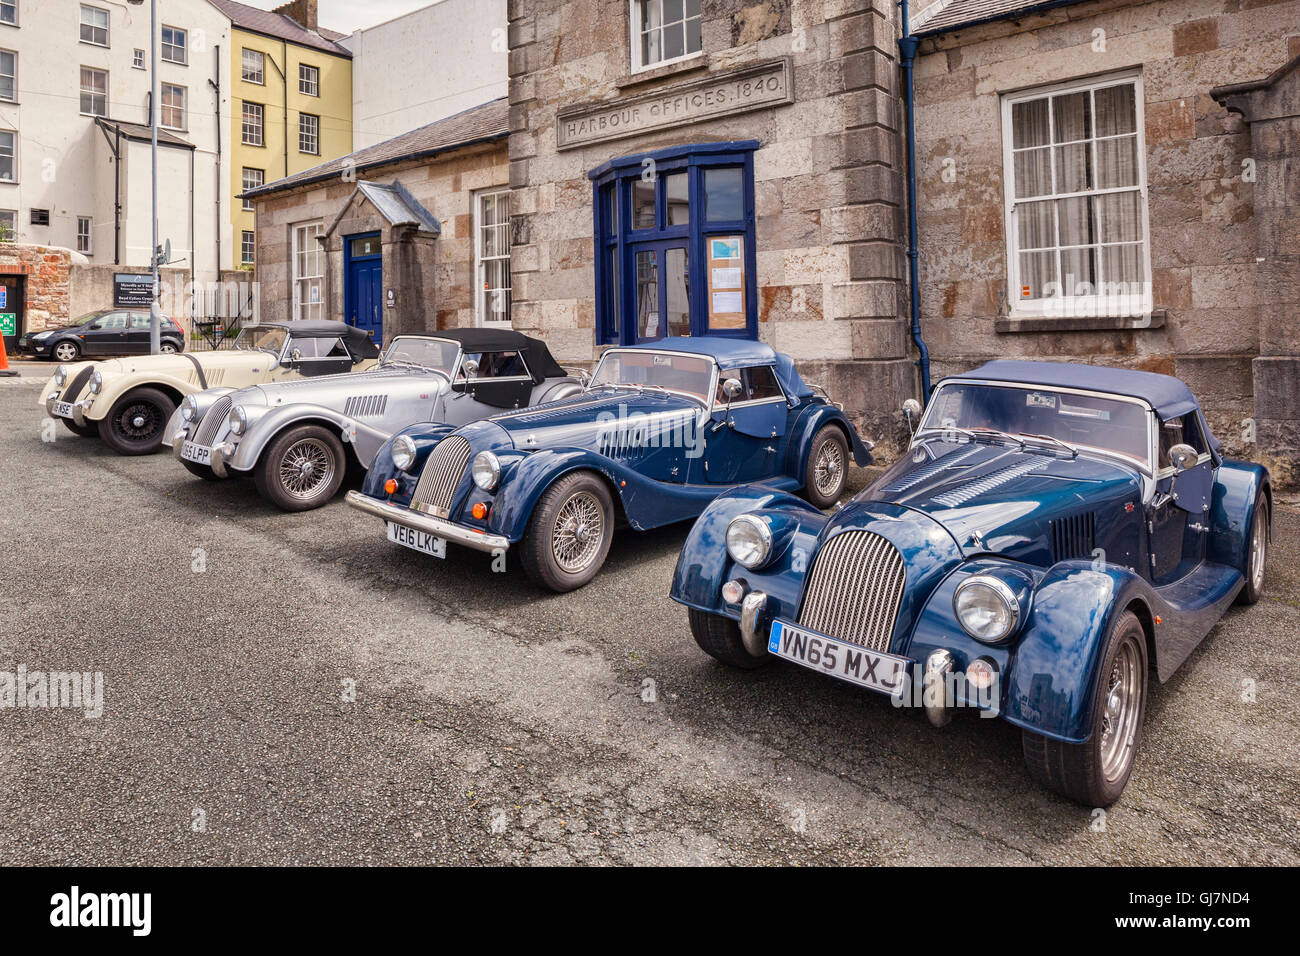 Four Morgan sports cars lined up in front of the Harbour Offices, Caernarfon, Wales, UK - Stock Image